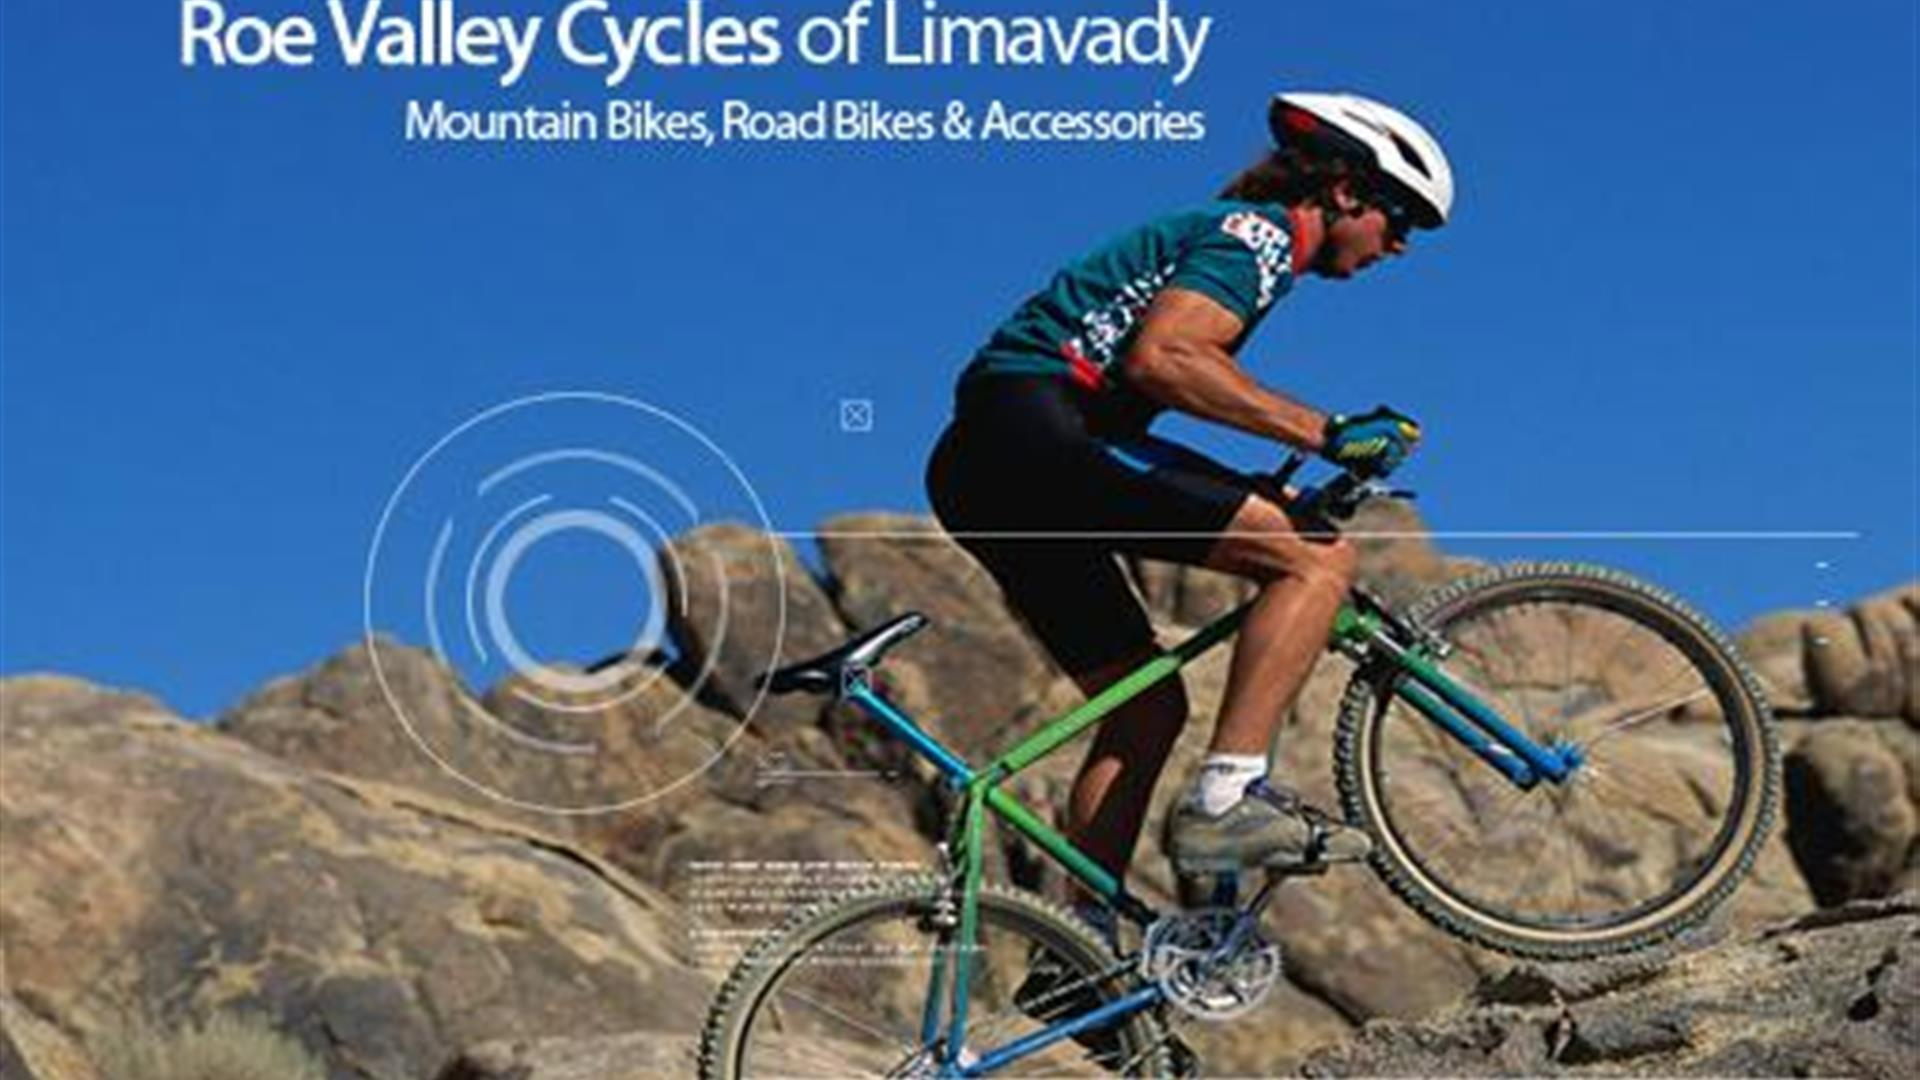 Roe Valley Cycles of Limavady